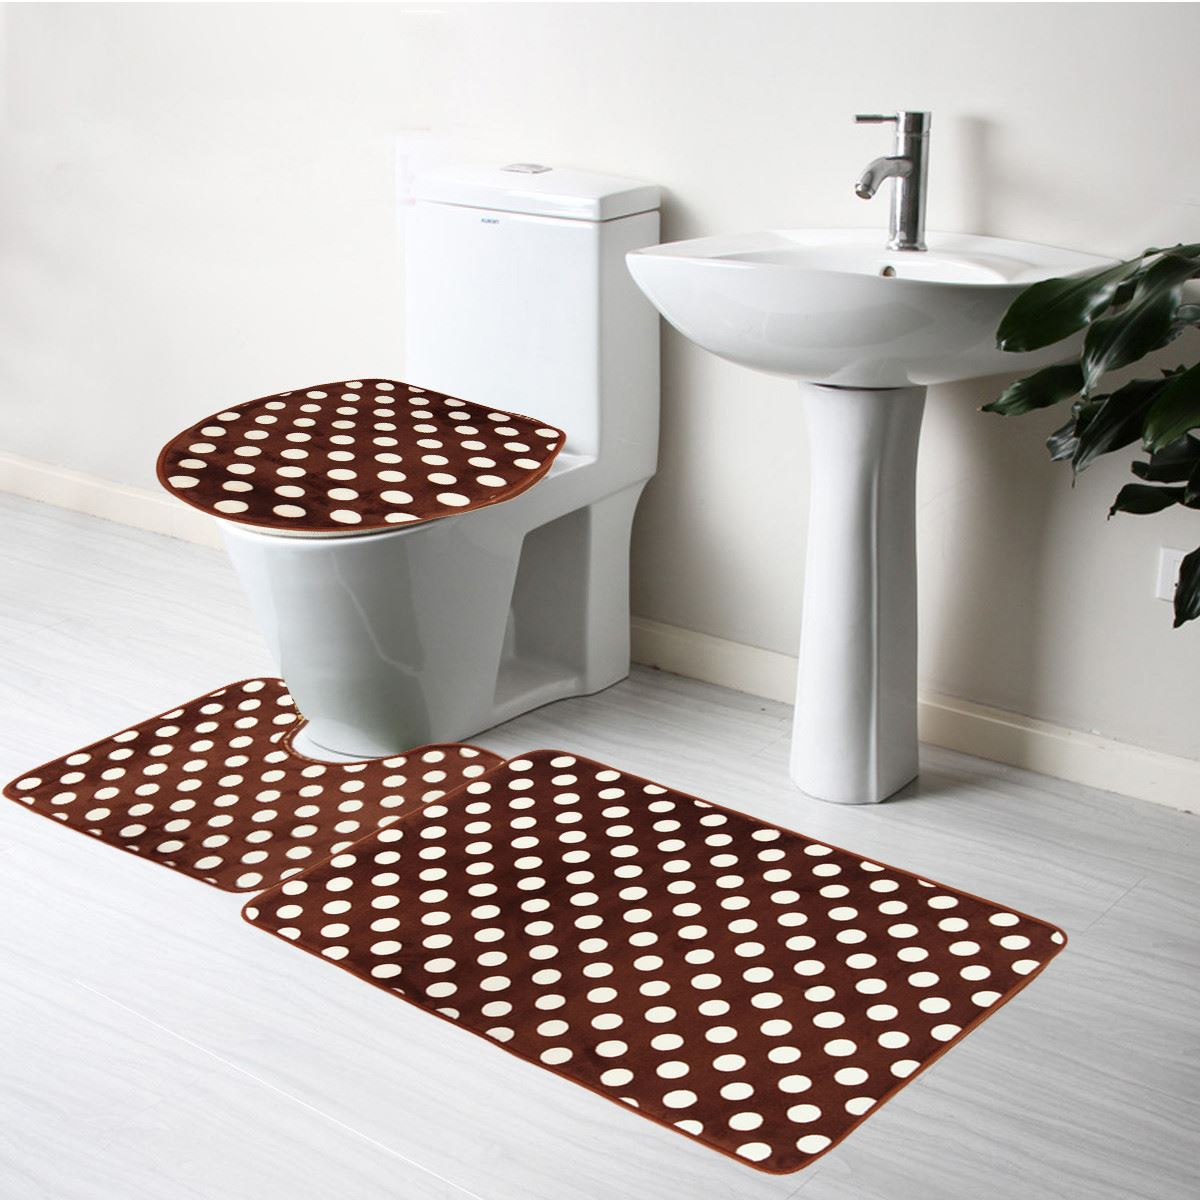 brown bath mat sets reviews - online shopping brown bath mat sets